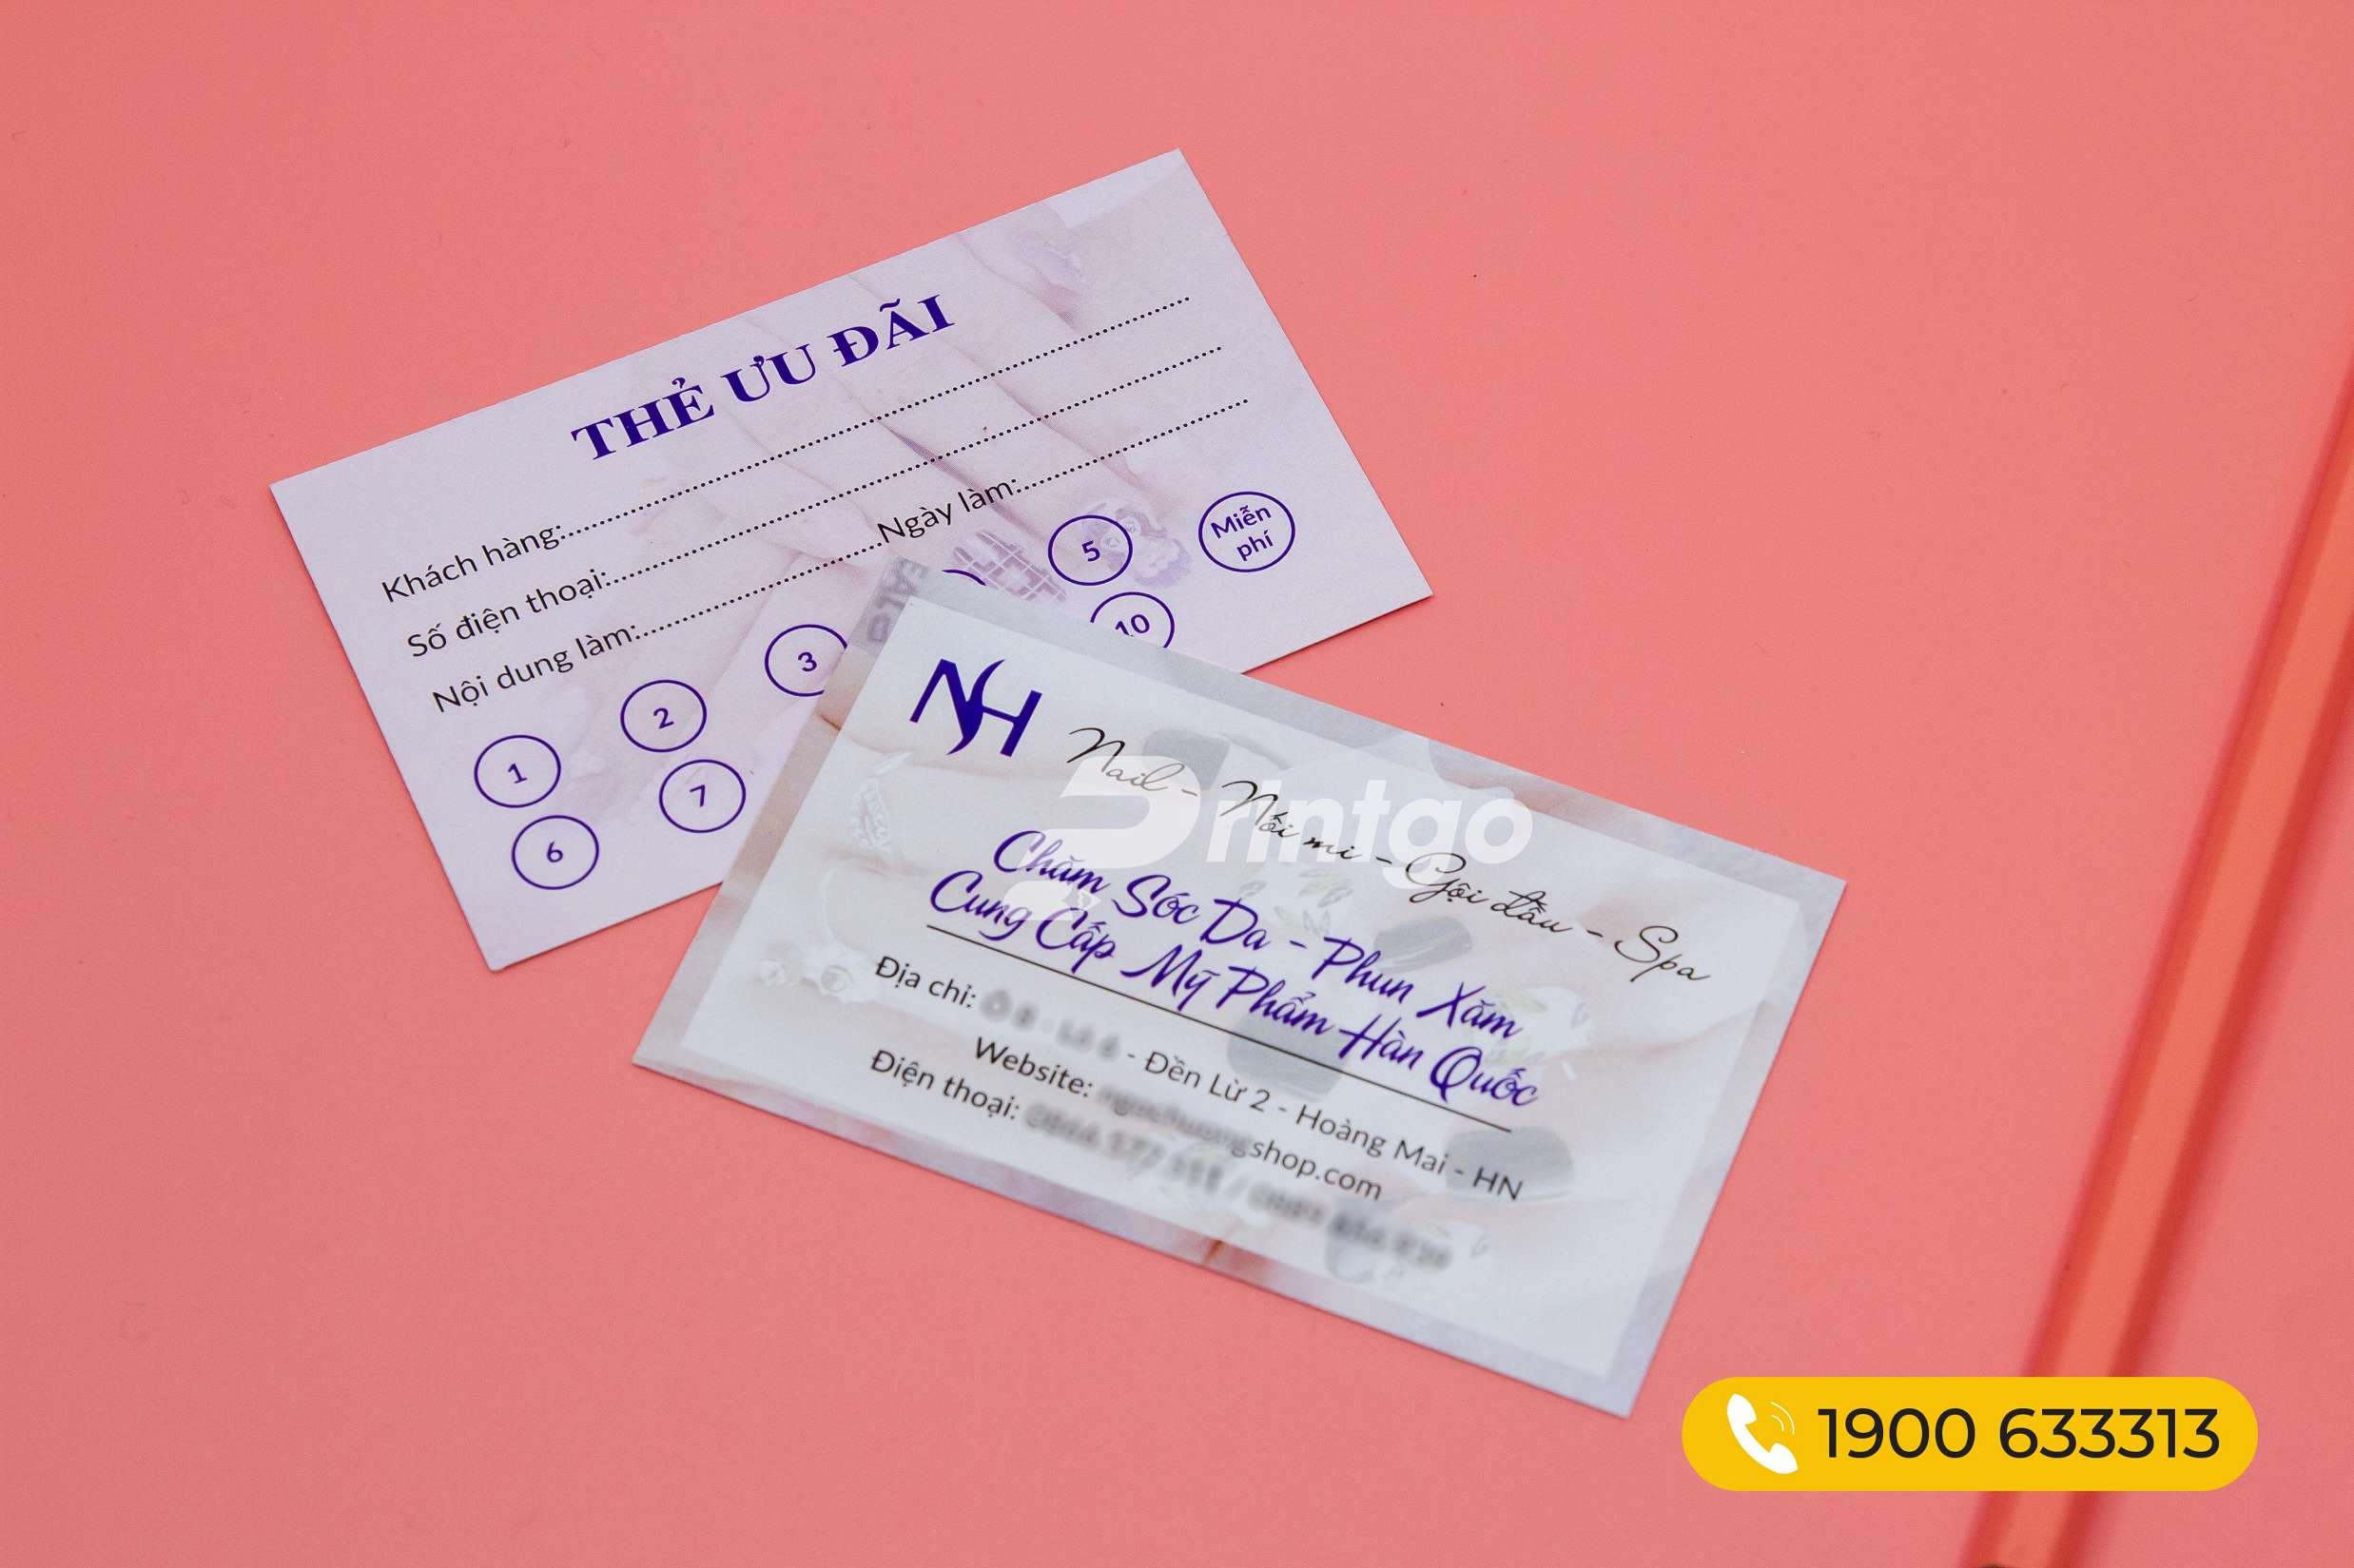 Name-card-PG-NC-000003